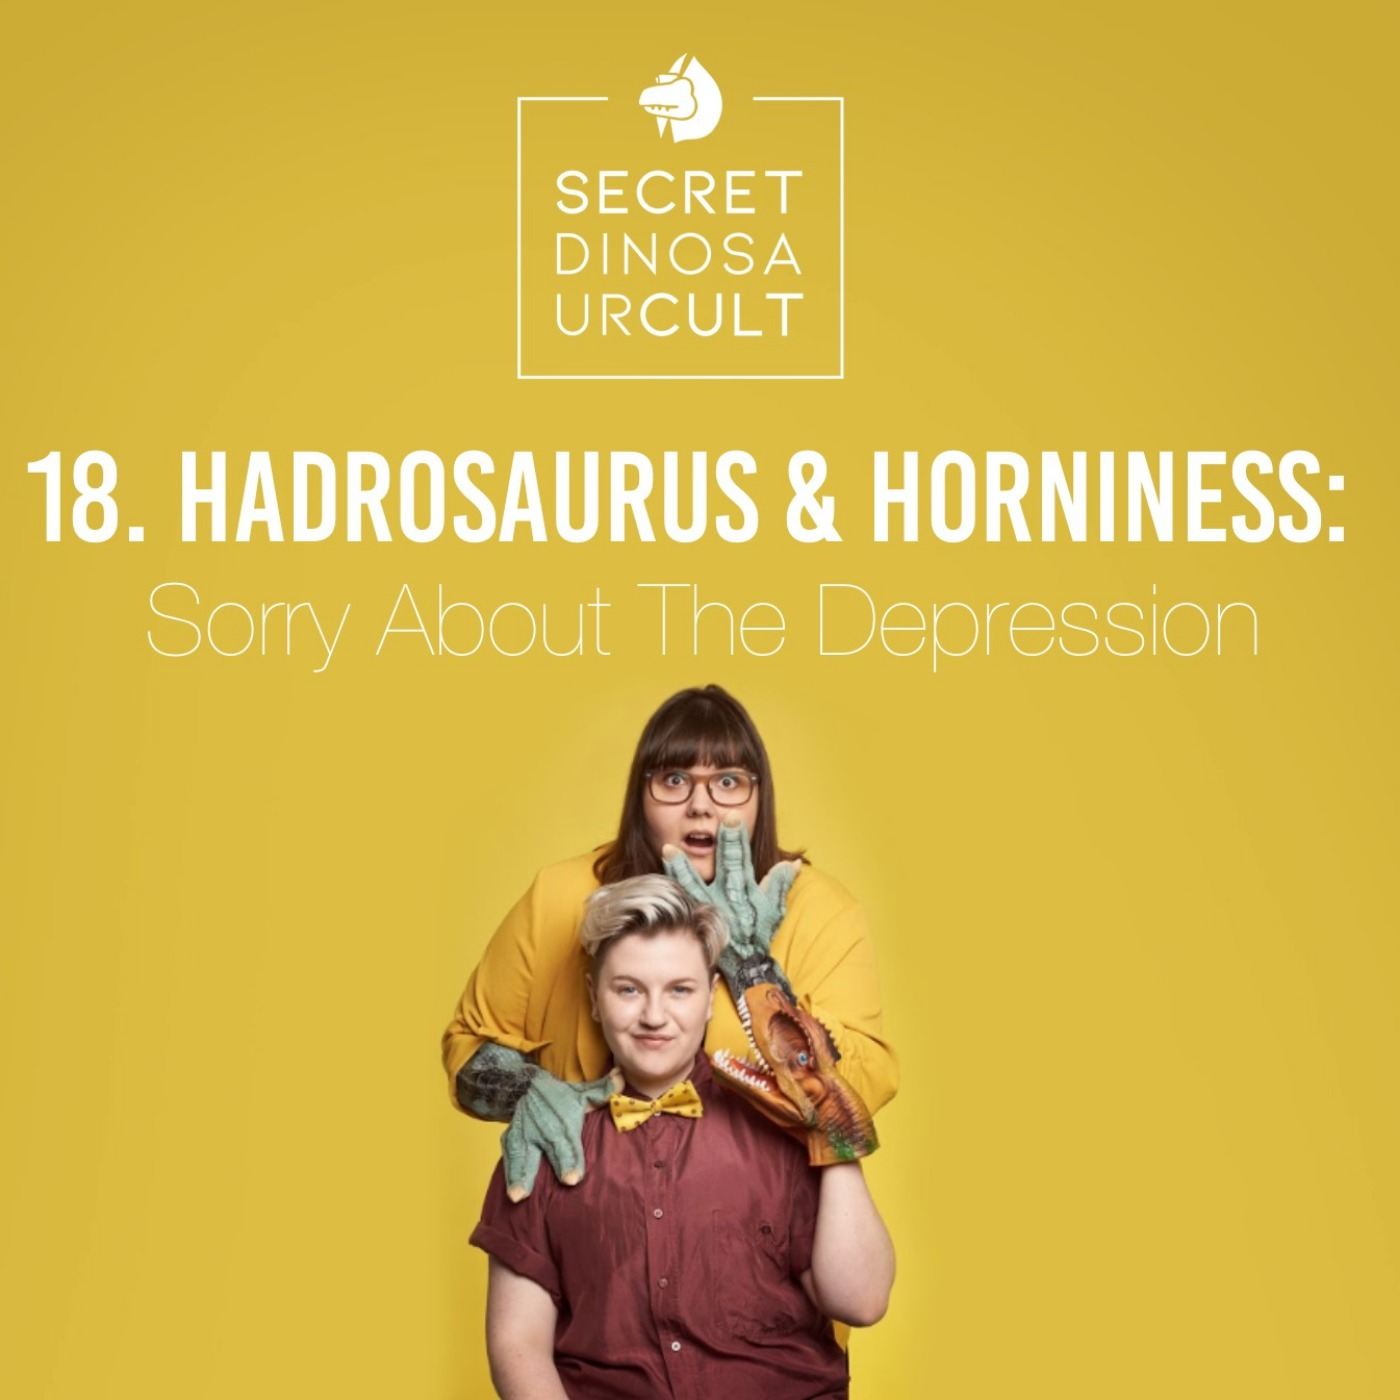 18. Hadrosaurus & Horniness: Sorry About The Depression